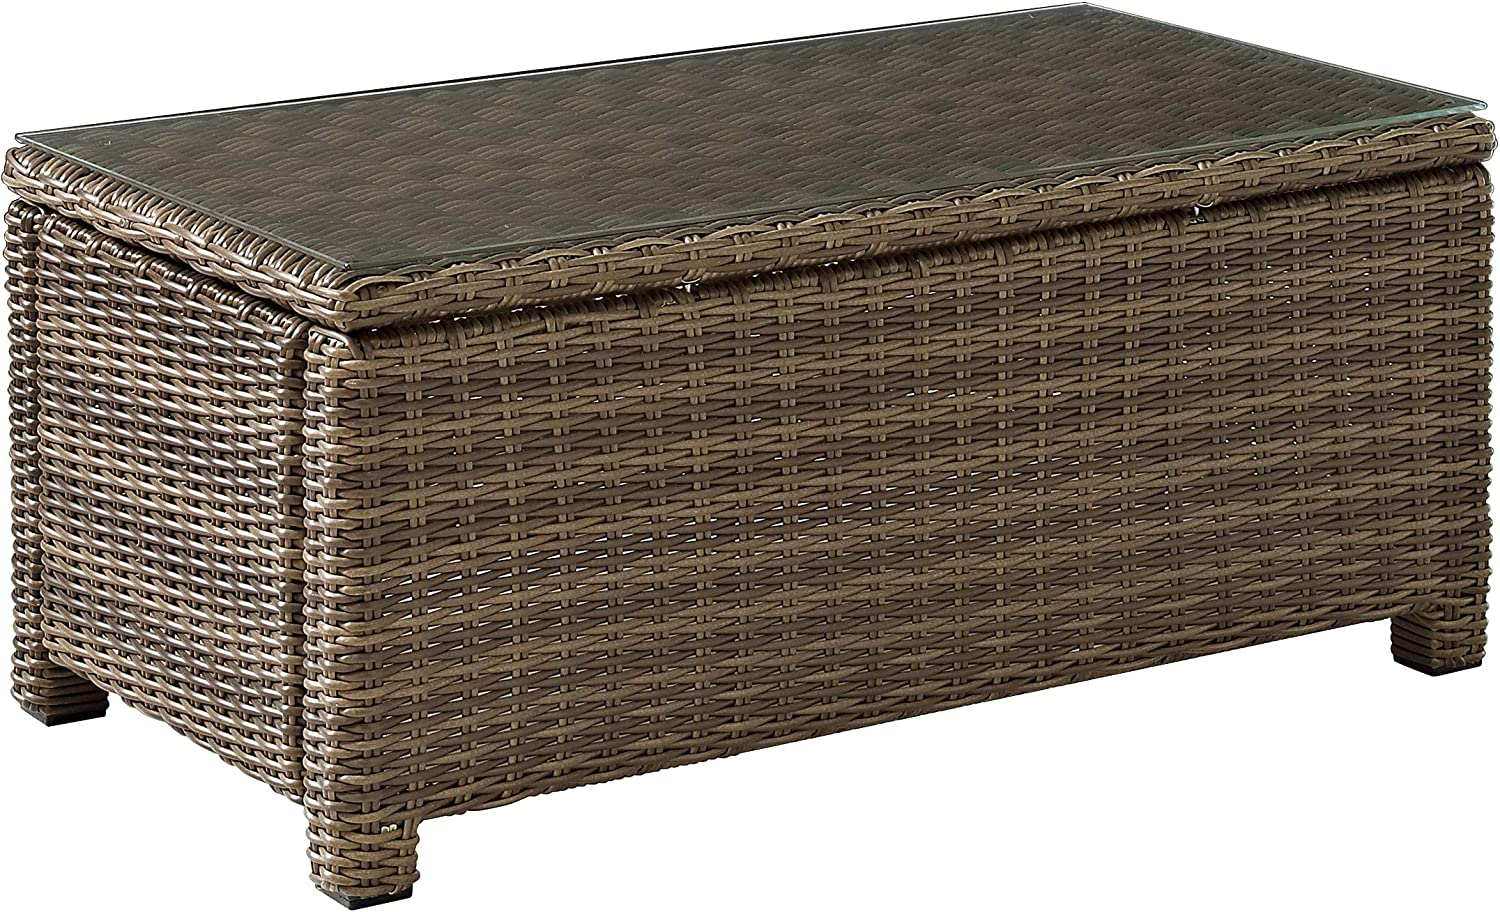 Crosley Furniture CO7208-WB Bradenton Outdoor Wicker Rectangular Tempered Glass Top Coffee Table, Brown